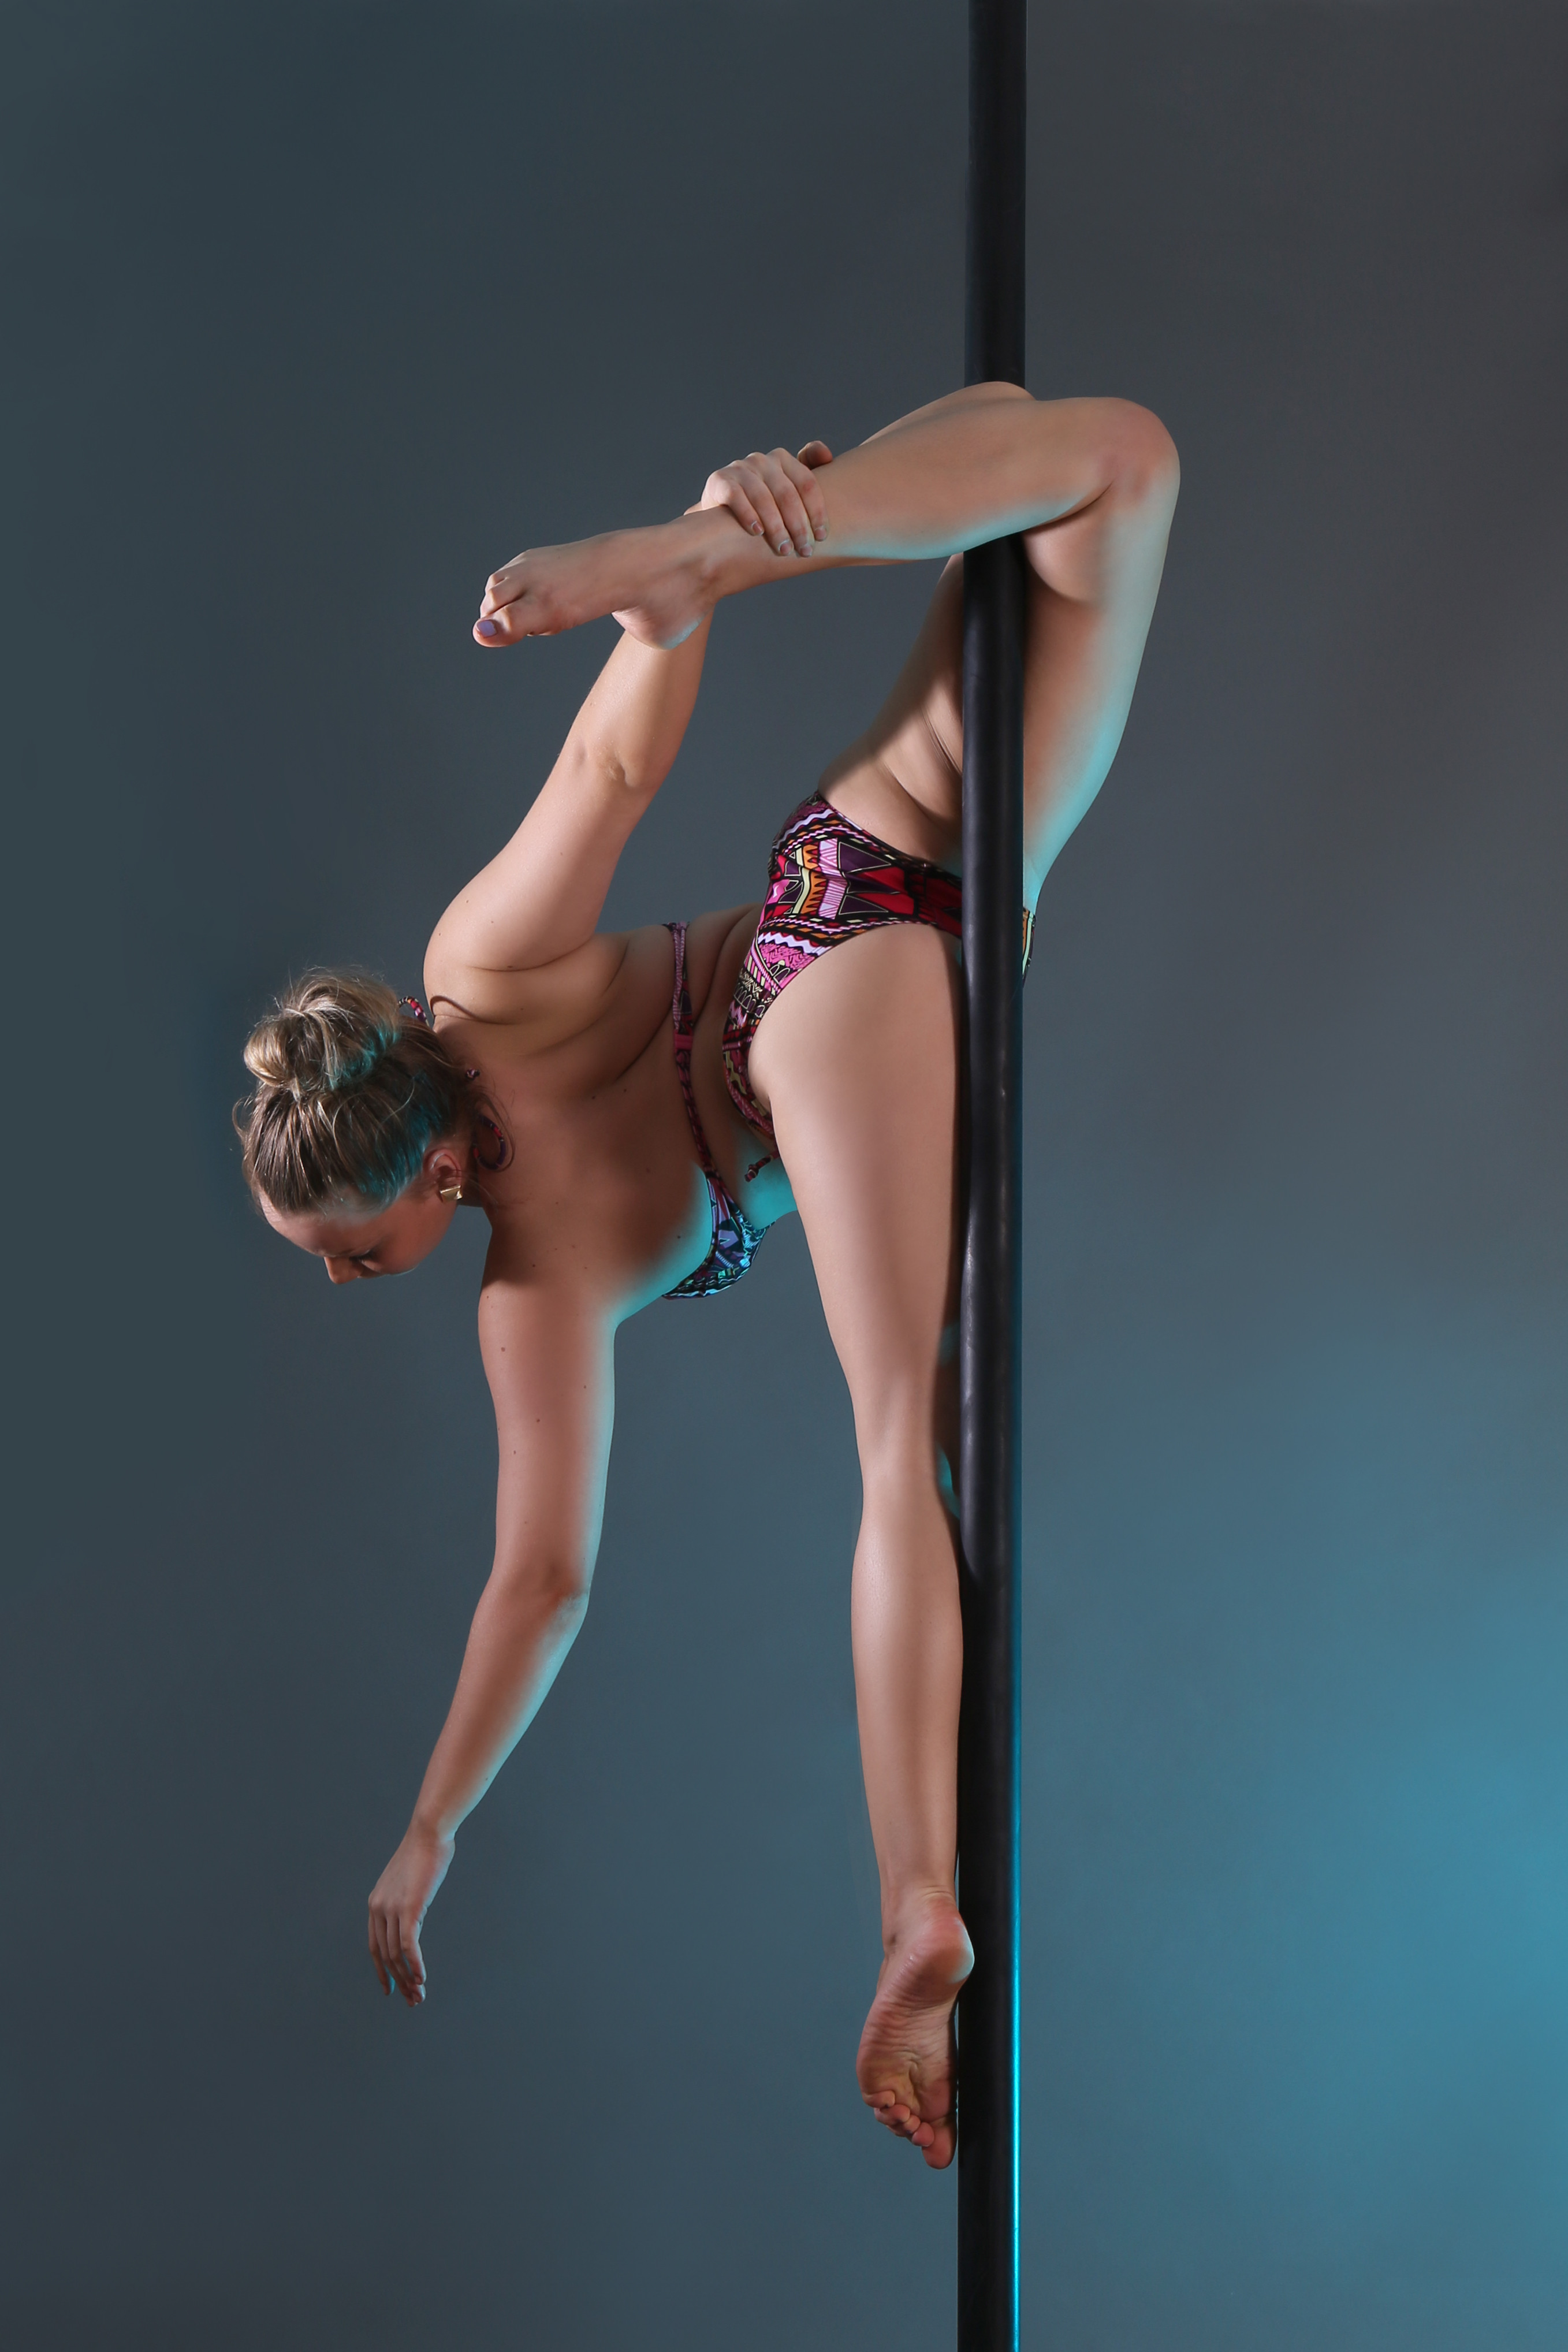 Tuesday 8.15-9.45pm Mixed Ability Pole